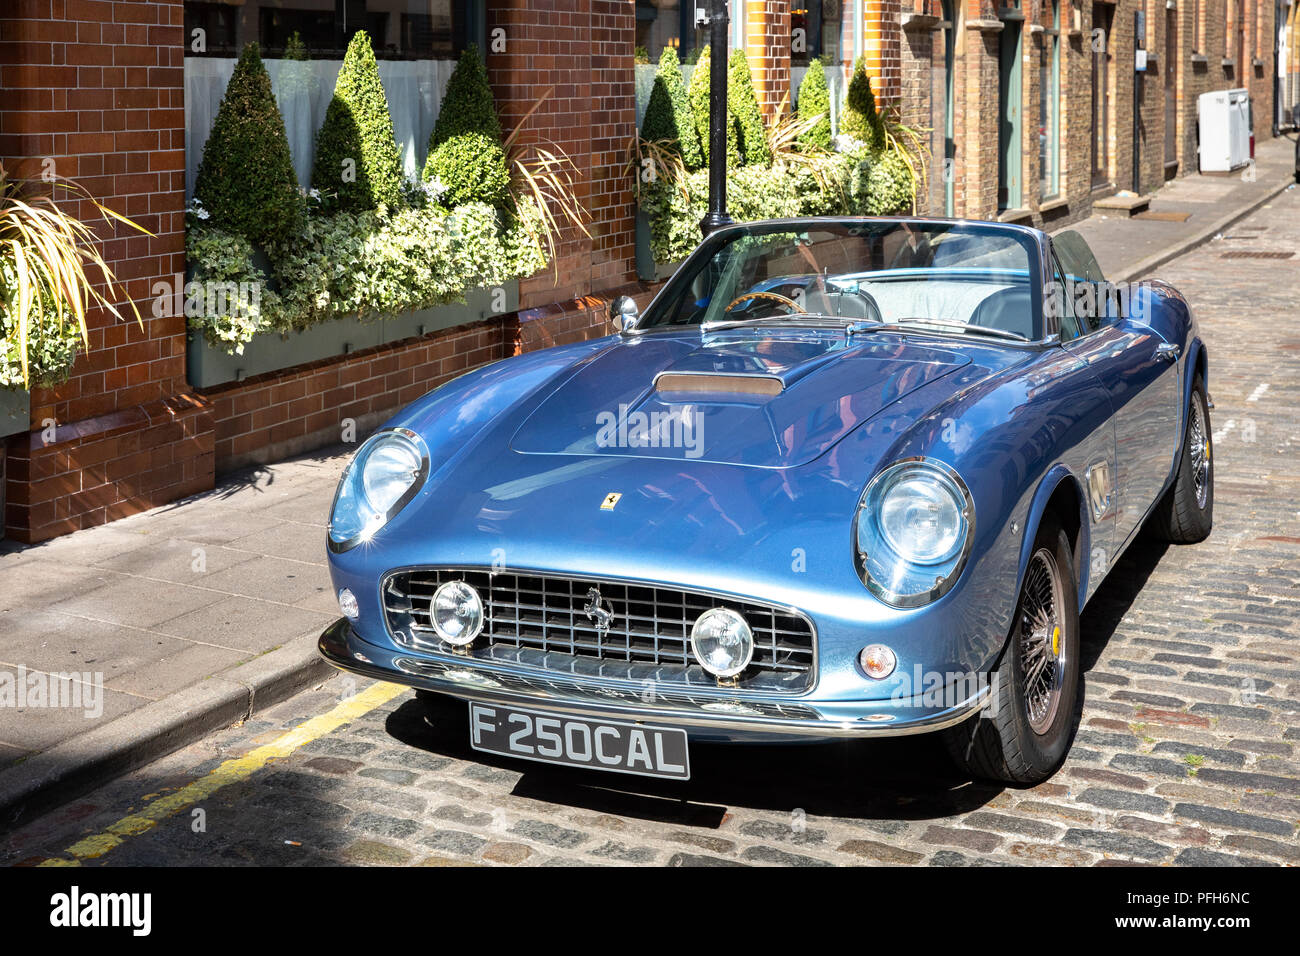 Vintage Ferrari convertible car Stock Photo 216122744 , Alamy